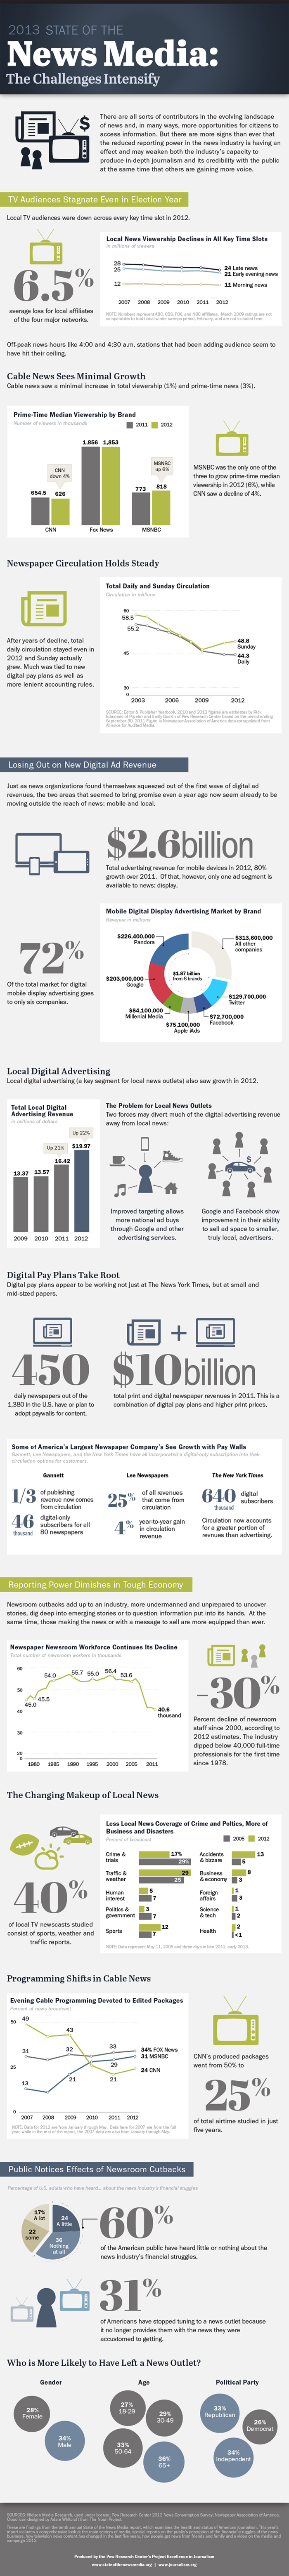 2013-State-of-the-News-Media-Overview-Infographic1